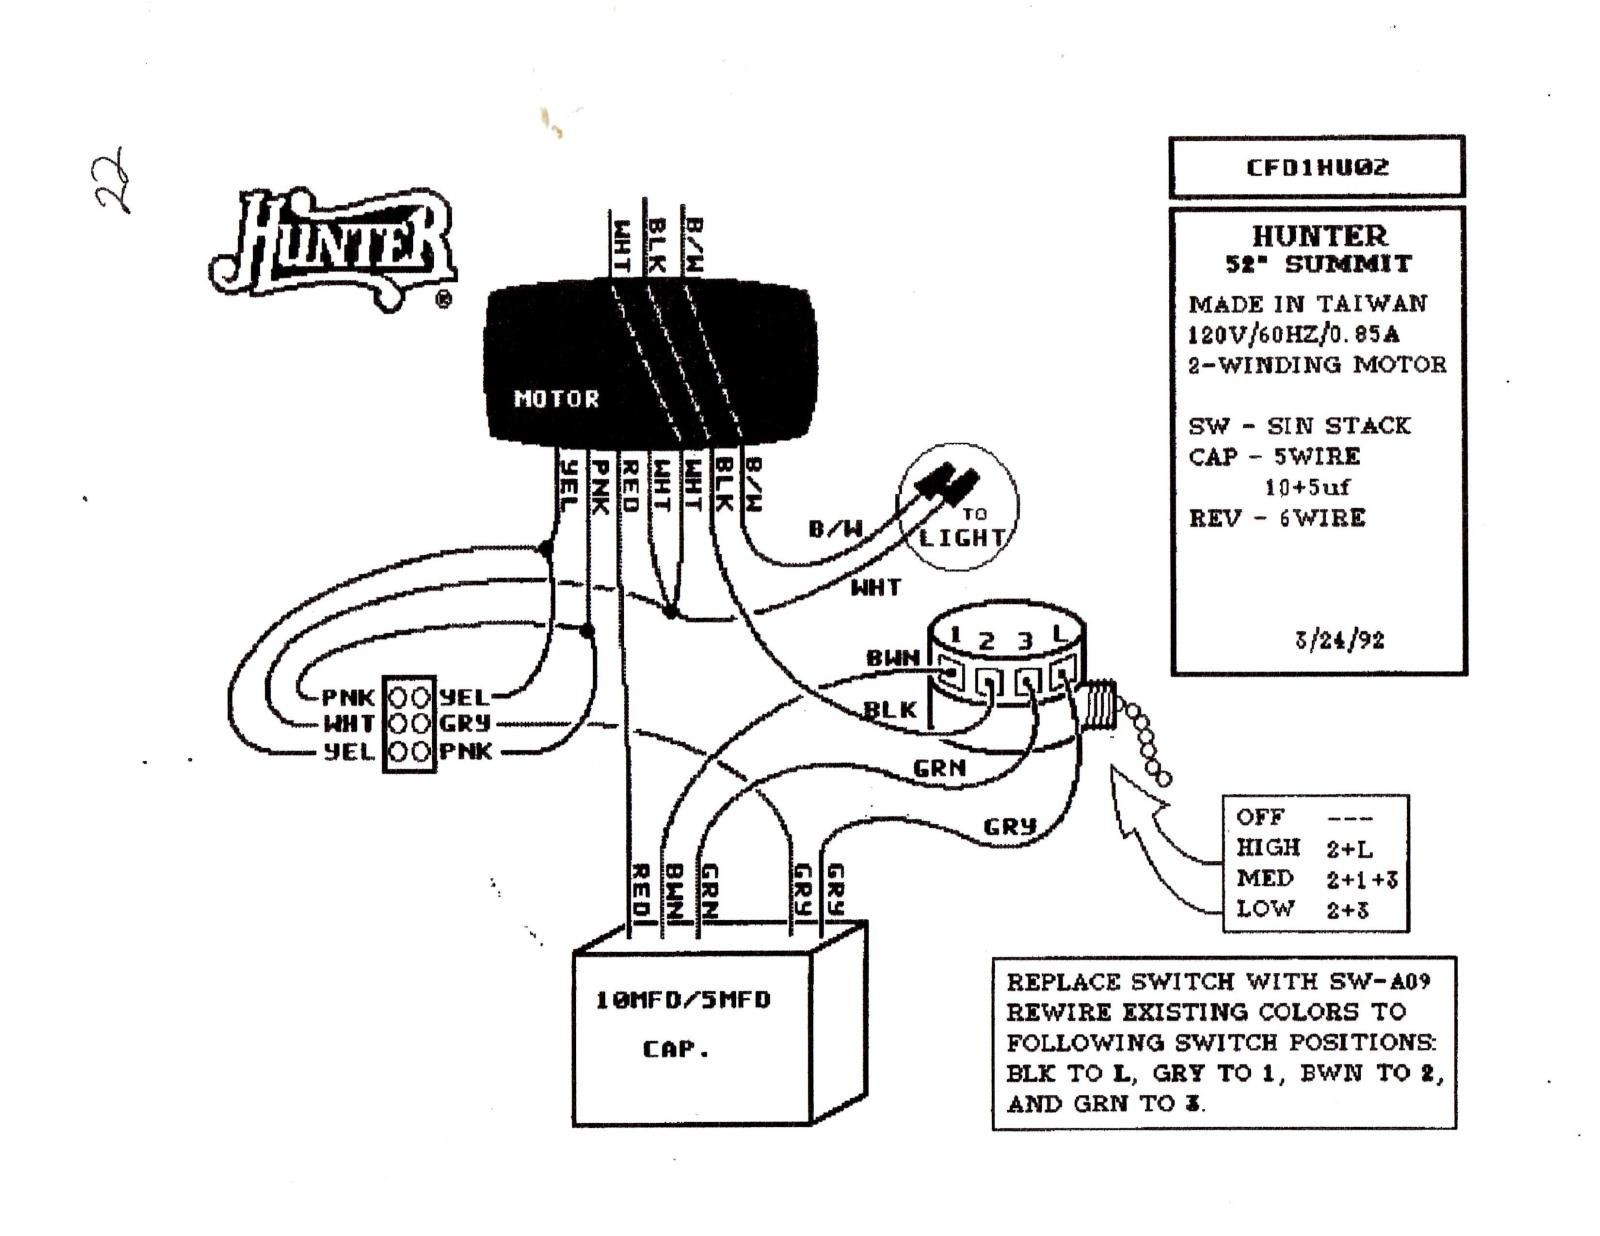 Wiring Diagram Hunter Receiver Wiring Library